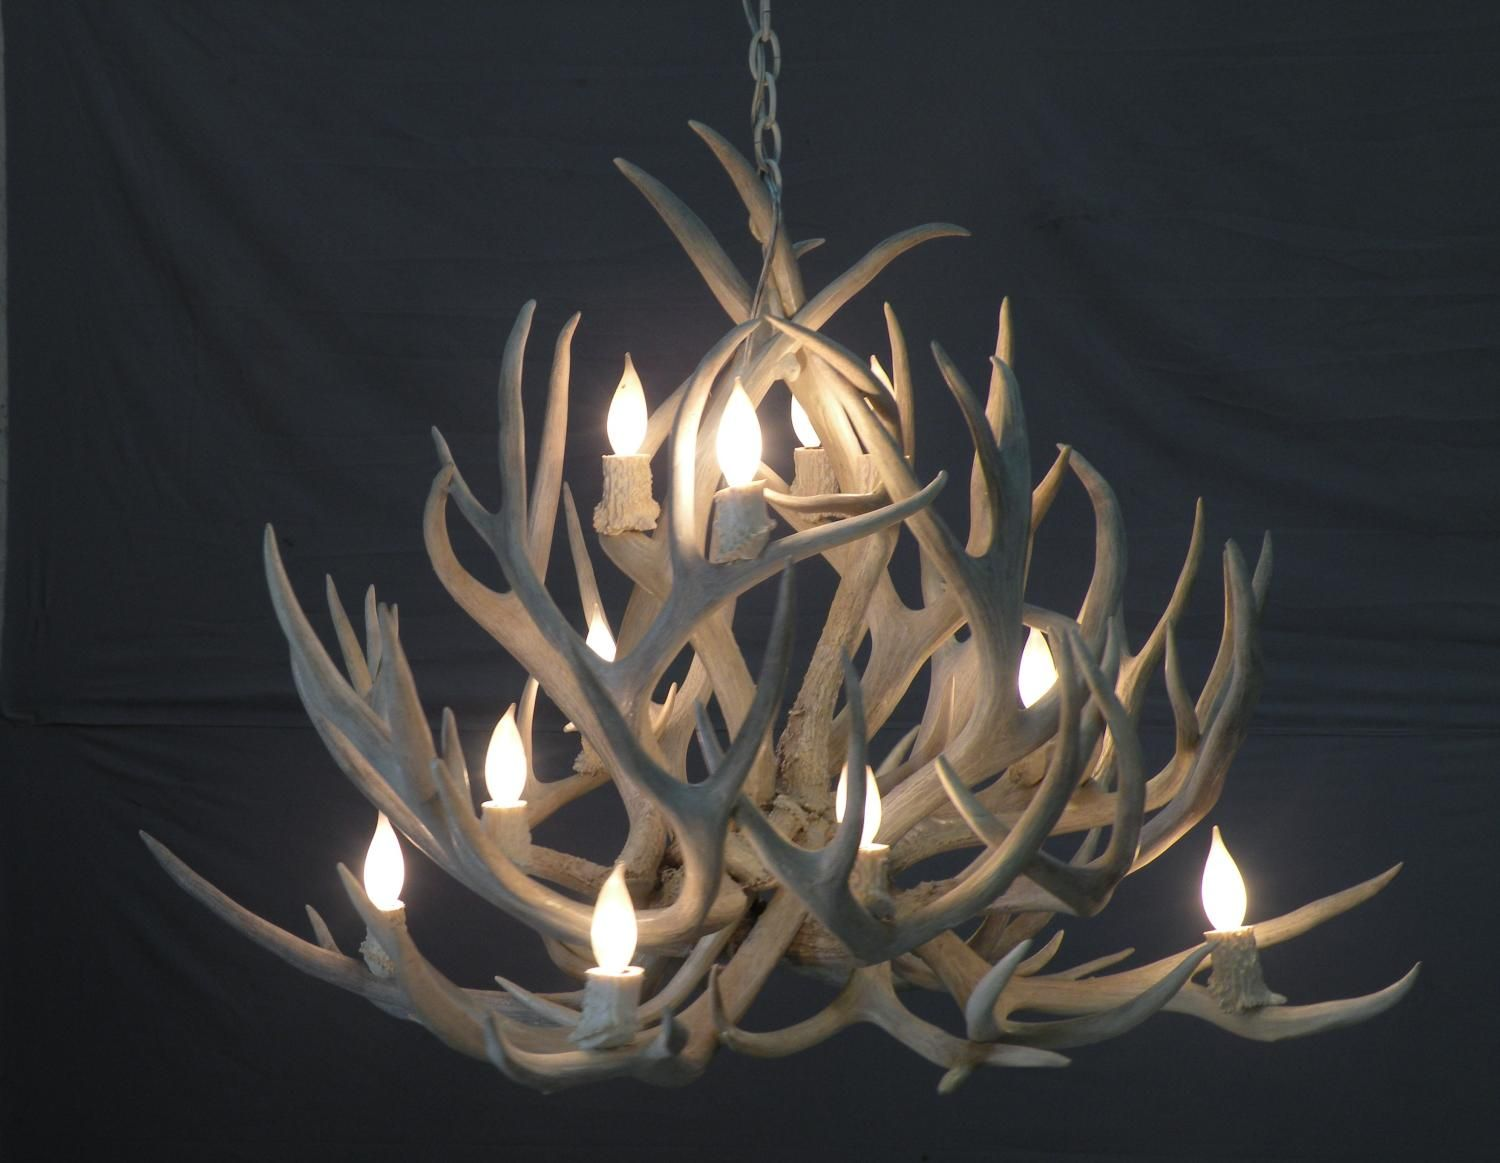 Lamps antler chandelier 6 light large antler chandelier uk lucite lamps antler chandelier 6 light large antler chandelier uk lucite antler chandelier deer antler chandelier mozeypictures Image collections